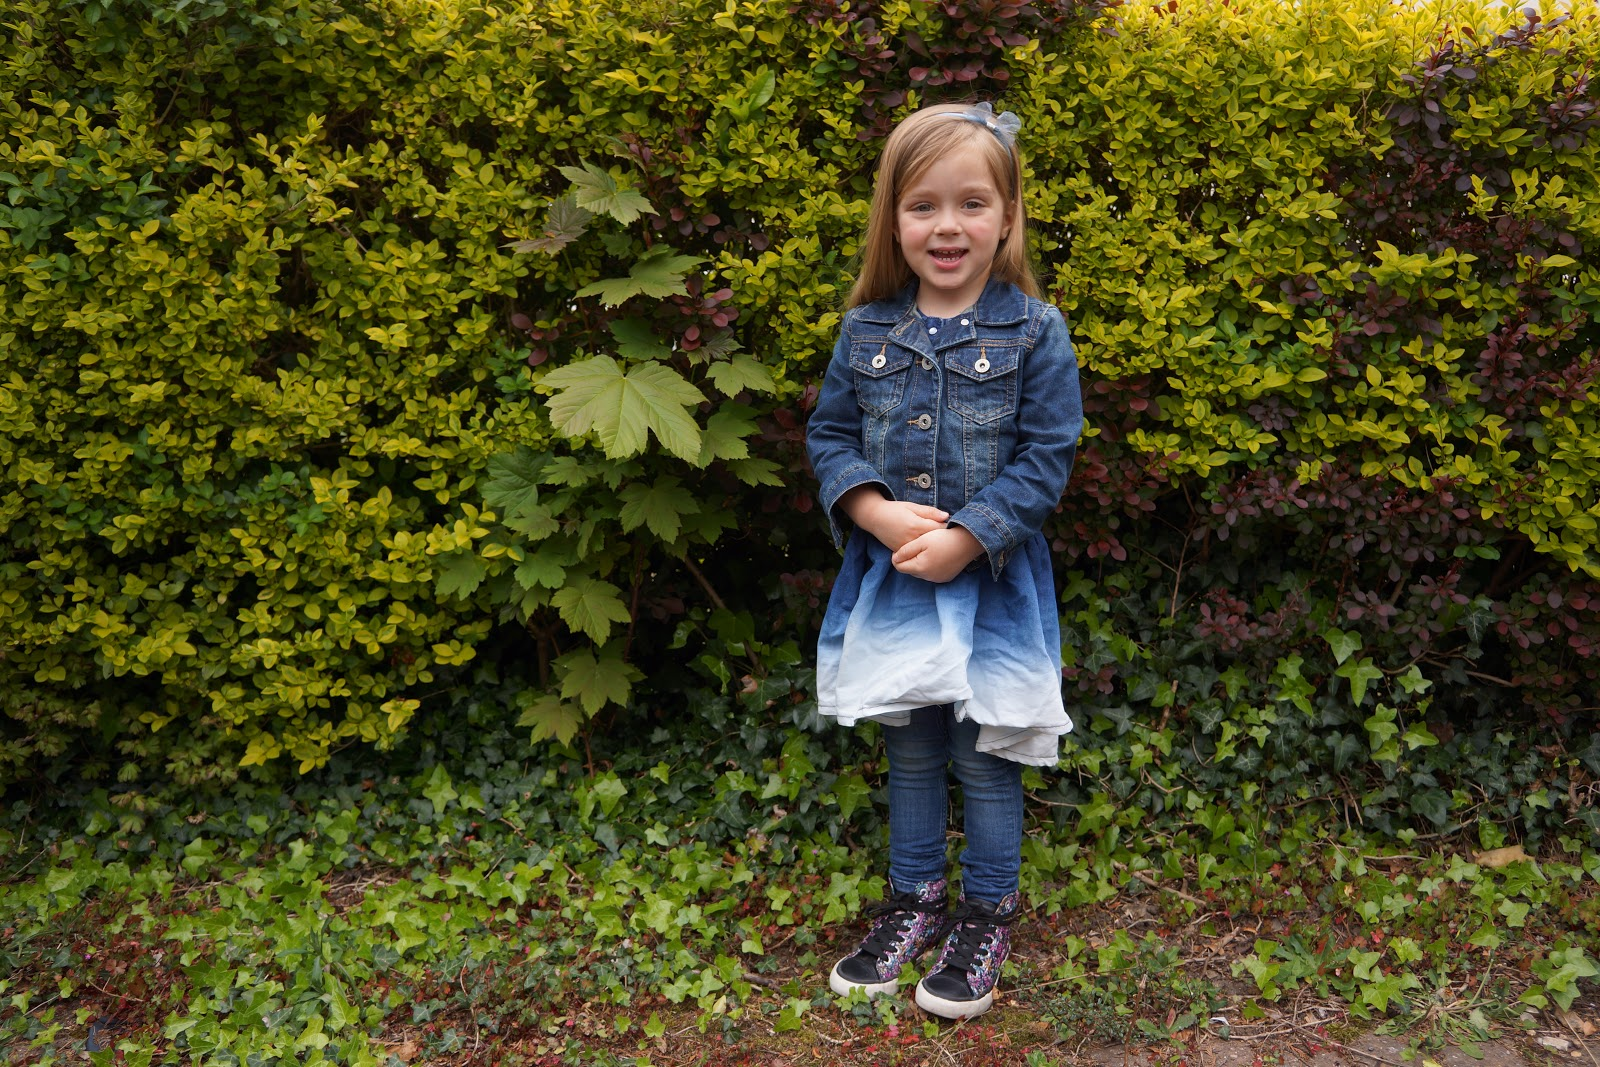 a denim outfit on a four year old girl